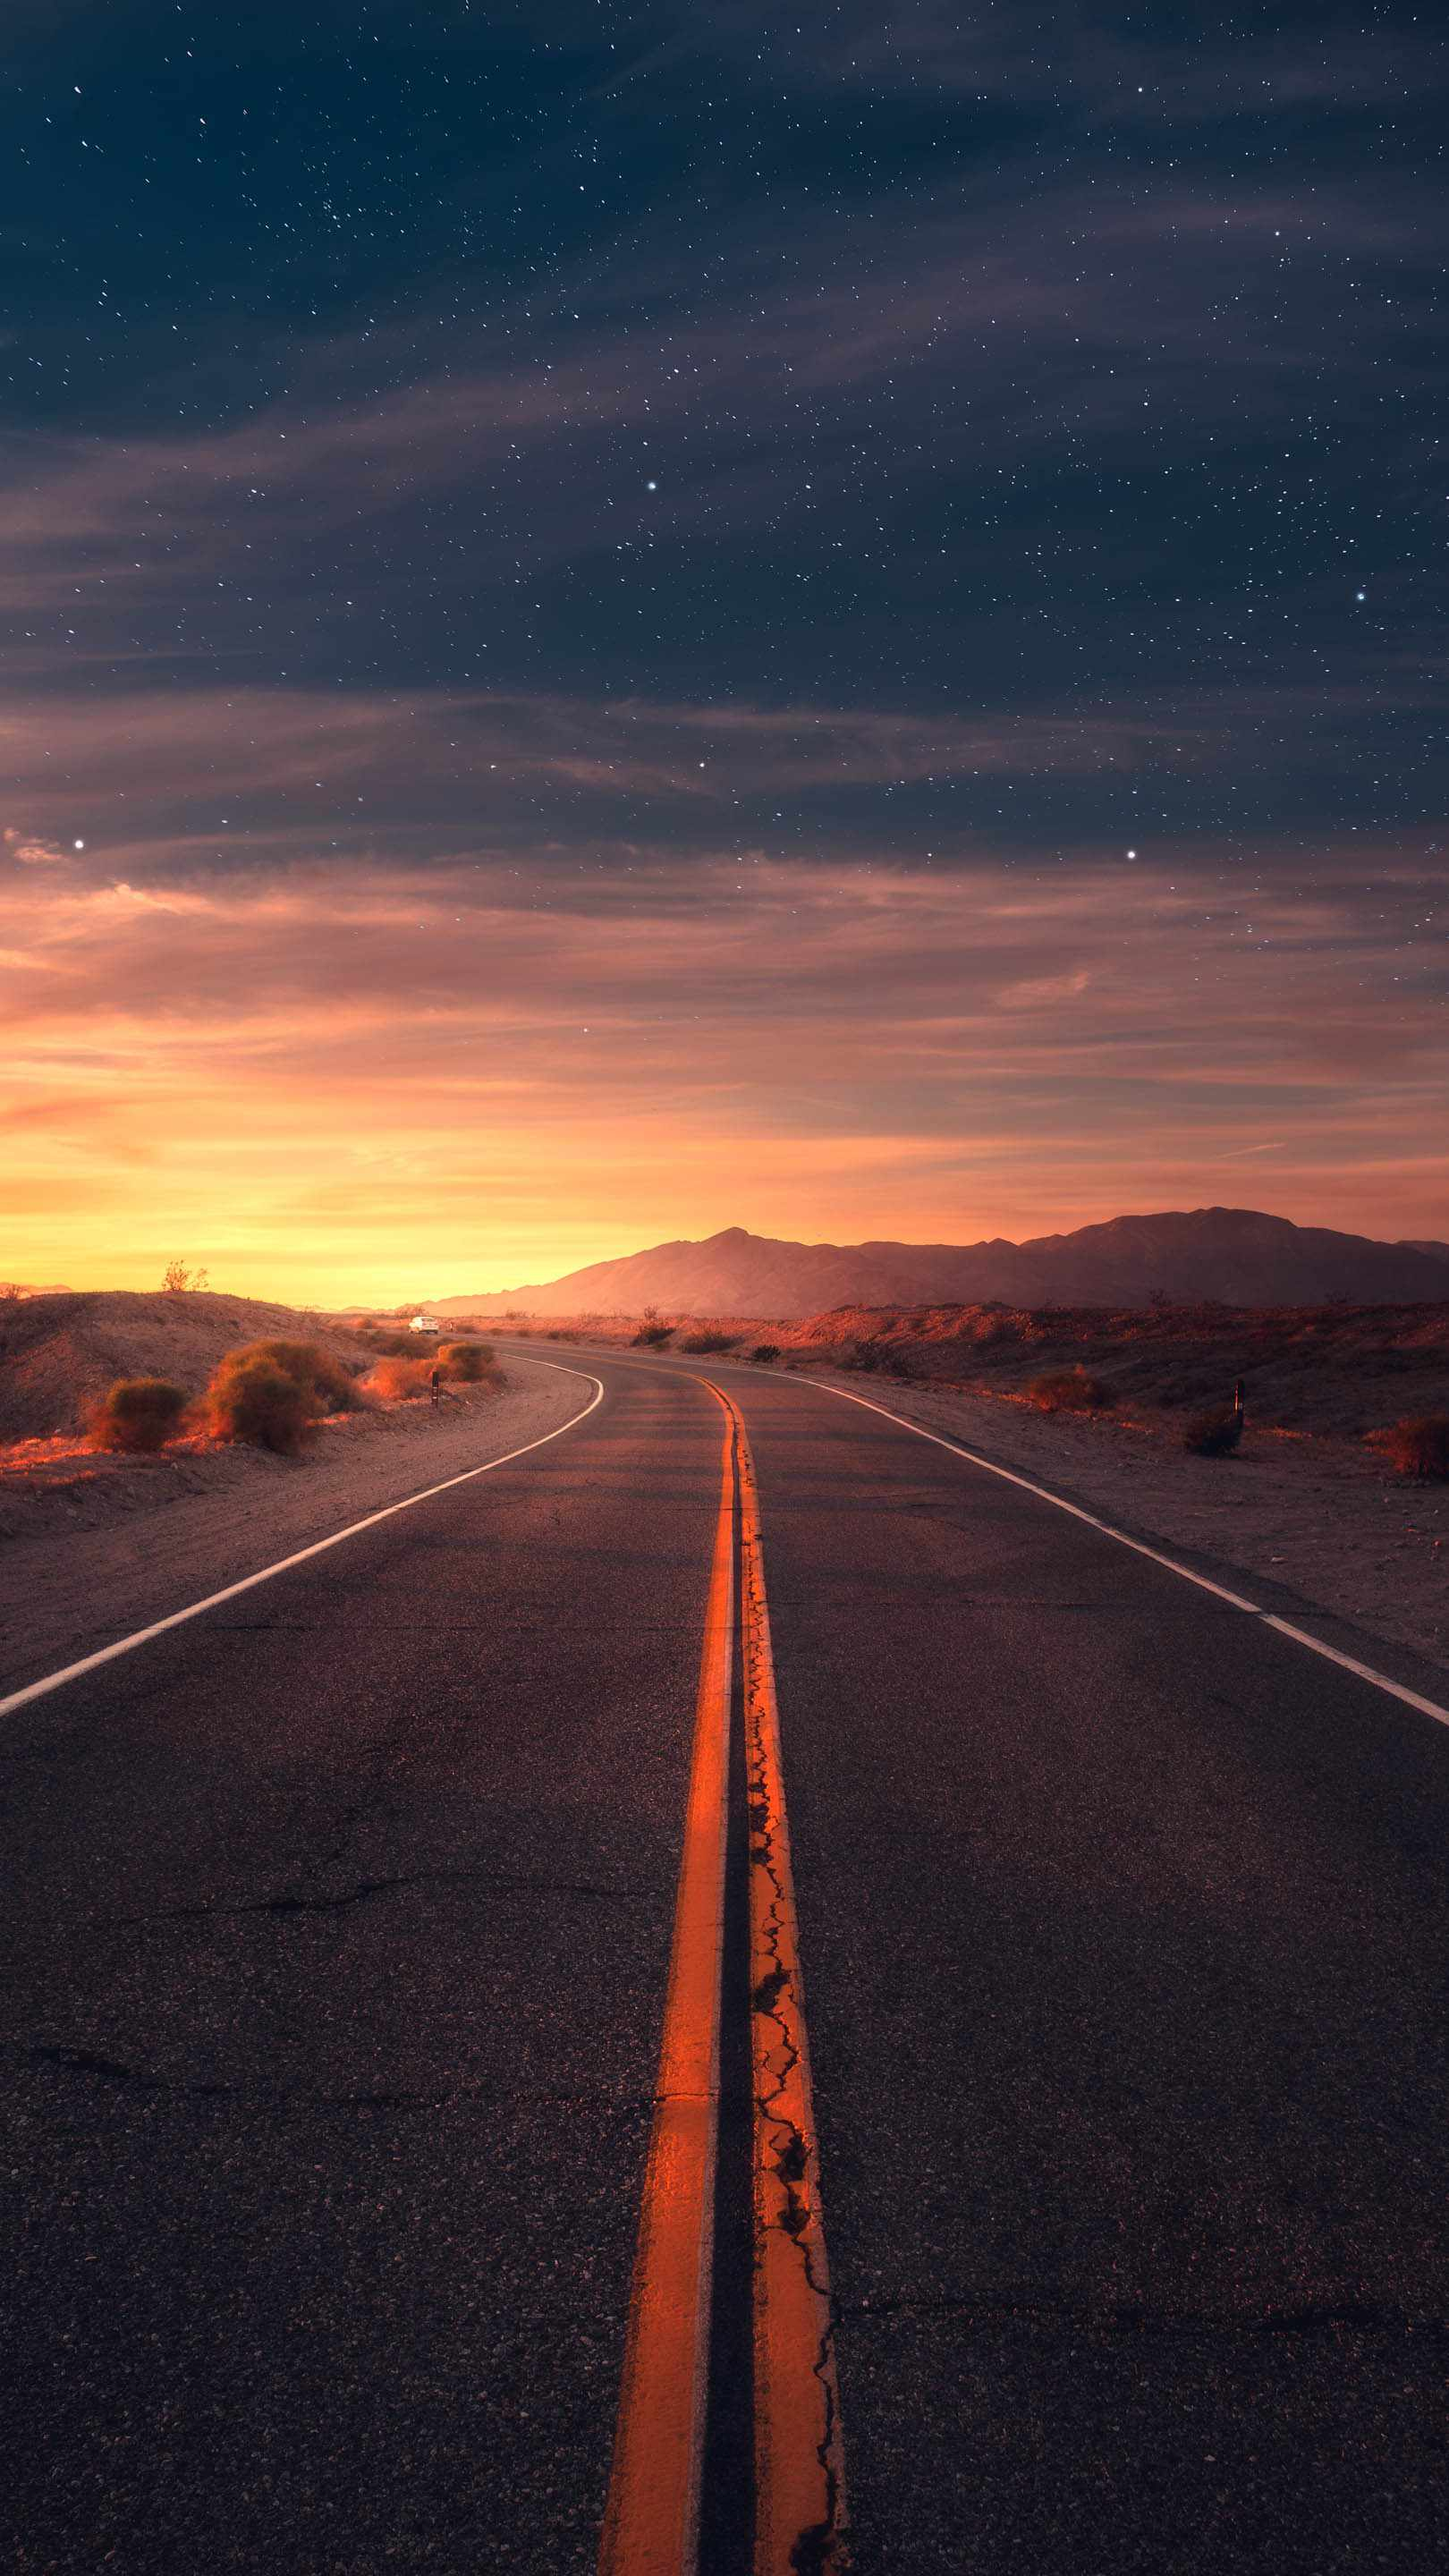 Nature Images Wallpapers With Quotes Desert Road Sunrise Iphone Wallpaper Iphone Wallpapers